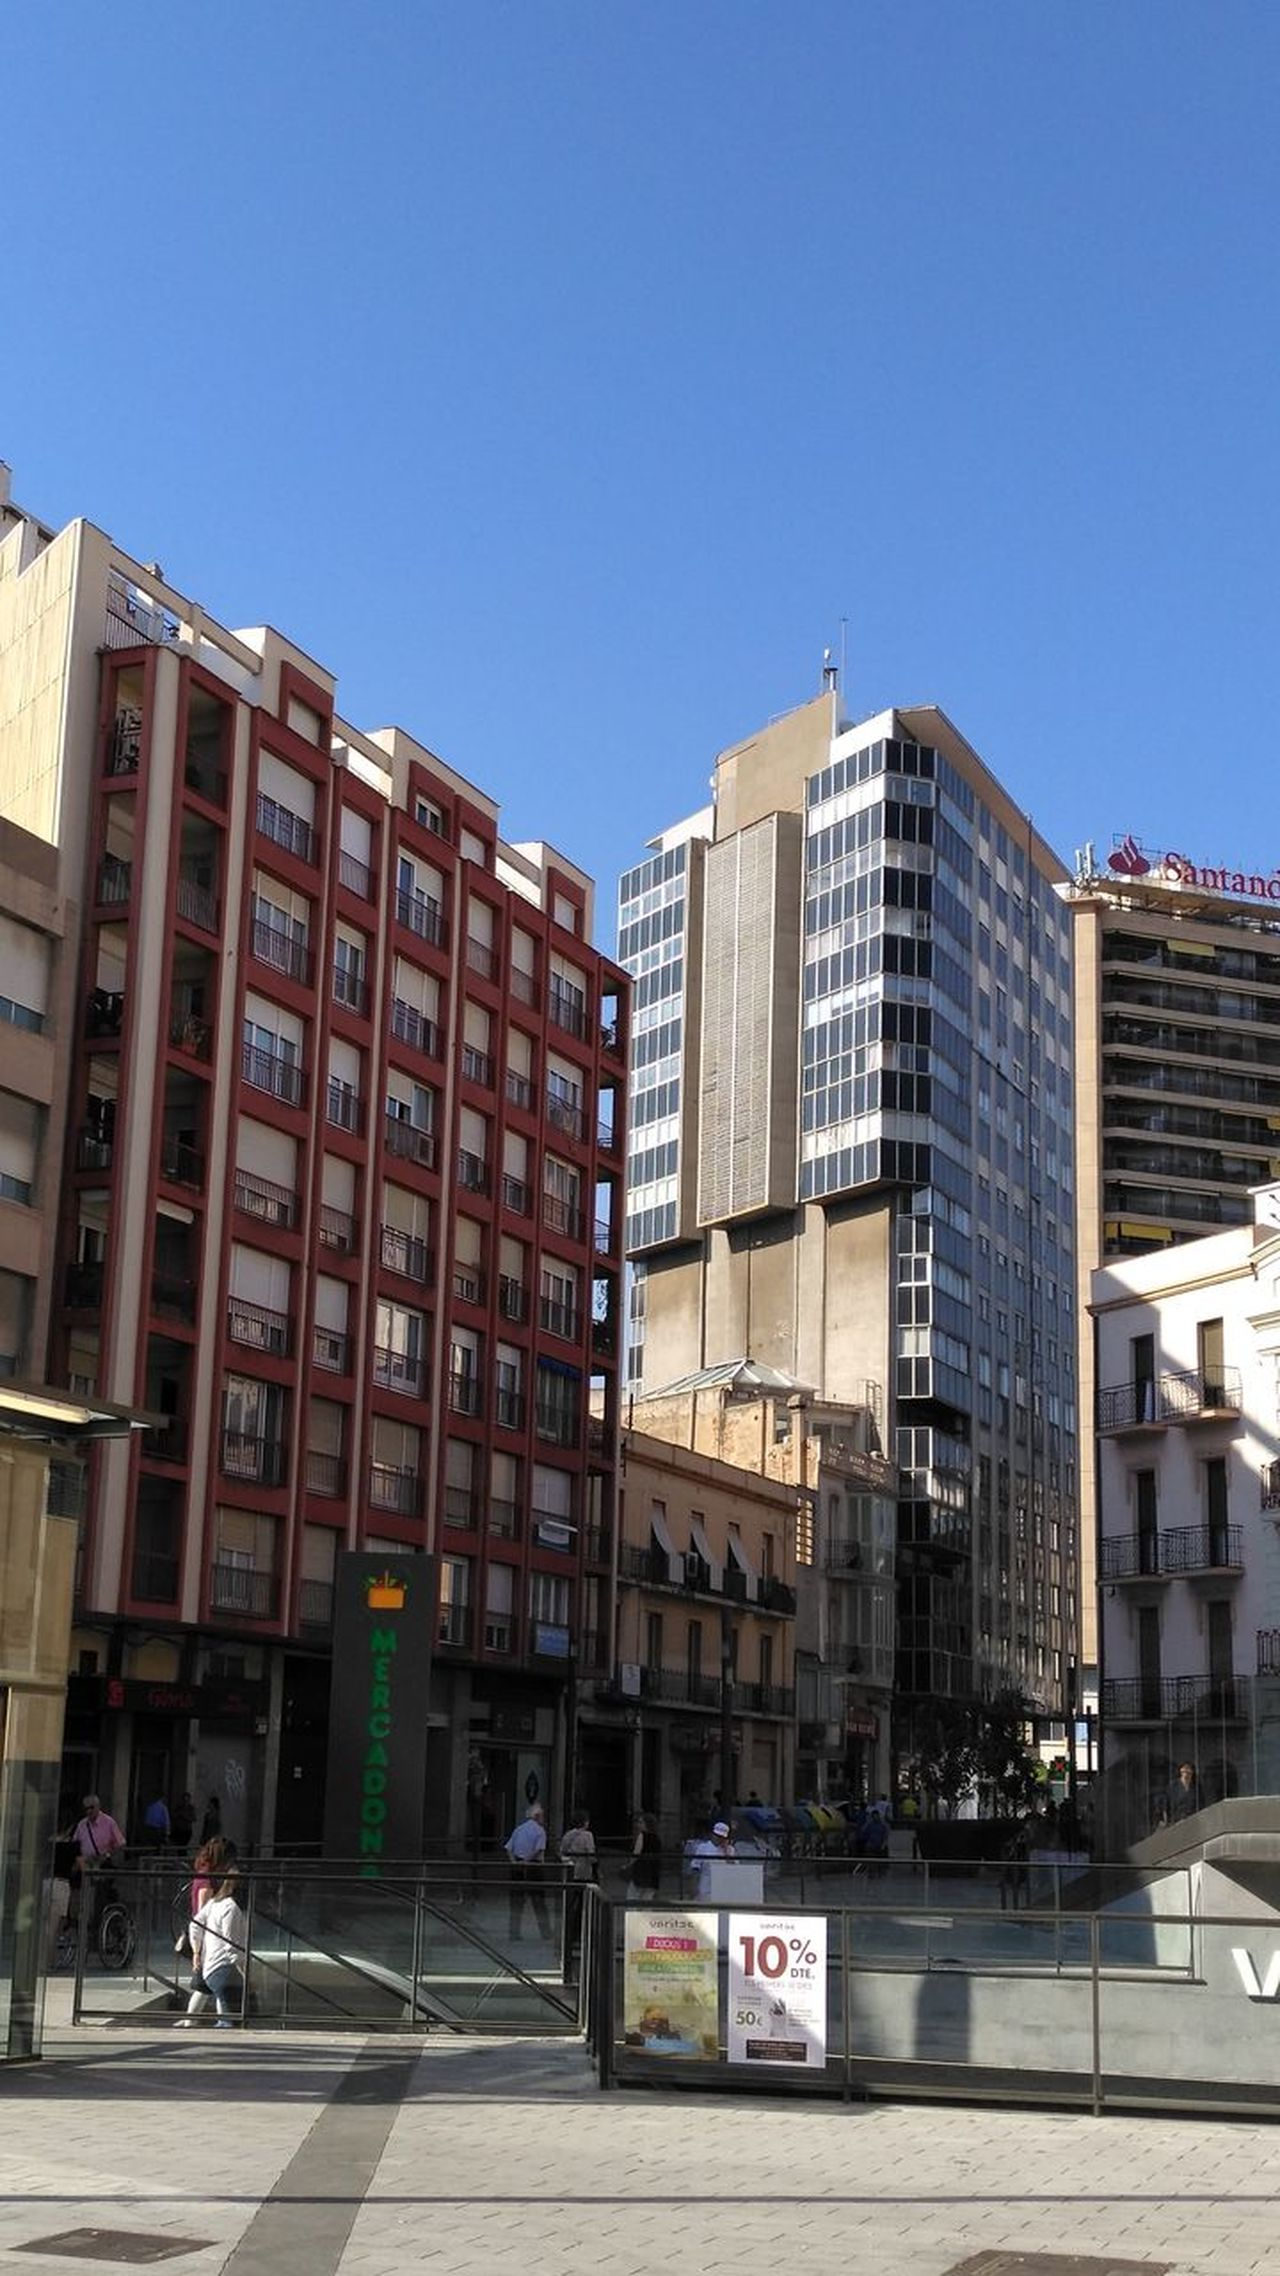 Tarragona, Spain Sin Filtros The Street Photographer - 2017 EyeEm Awards Huawei Photography Architecture Business Finance And Industry Building Exterior Day City Outdoors Clear Sky Sky People Cityscape